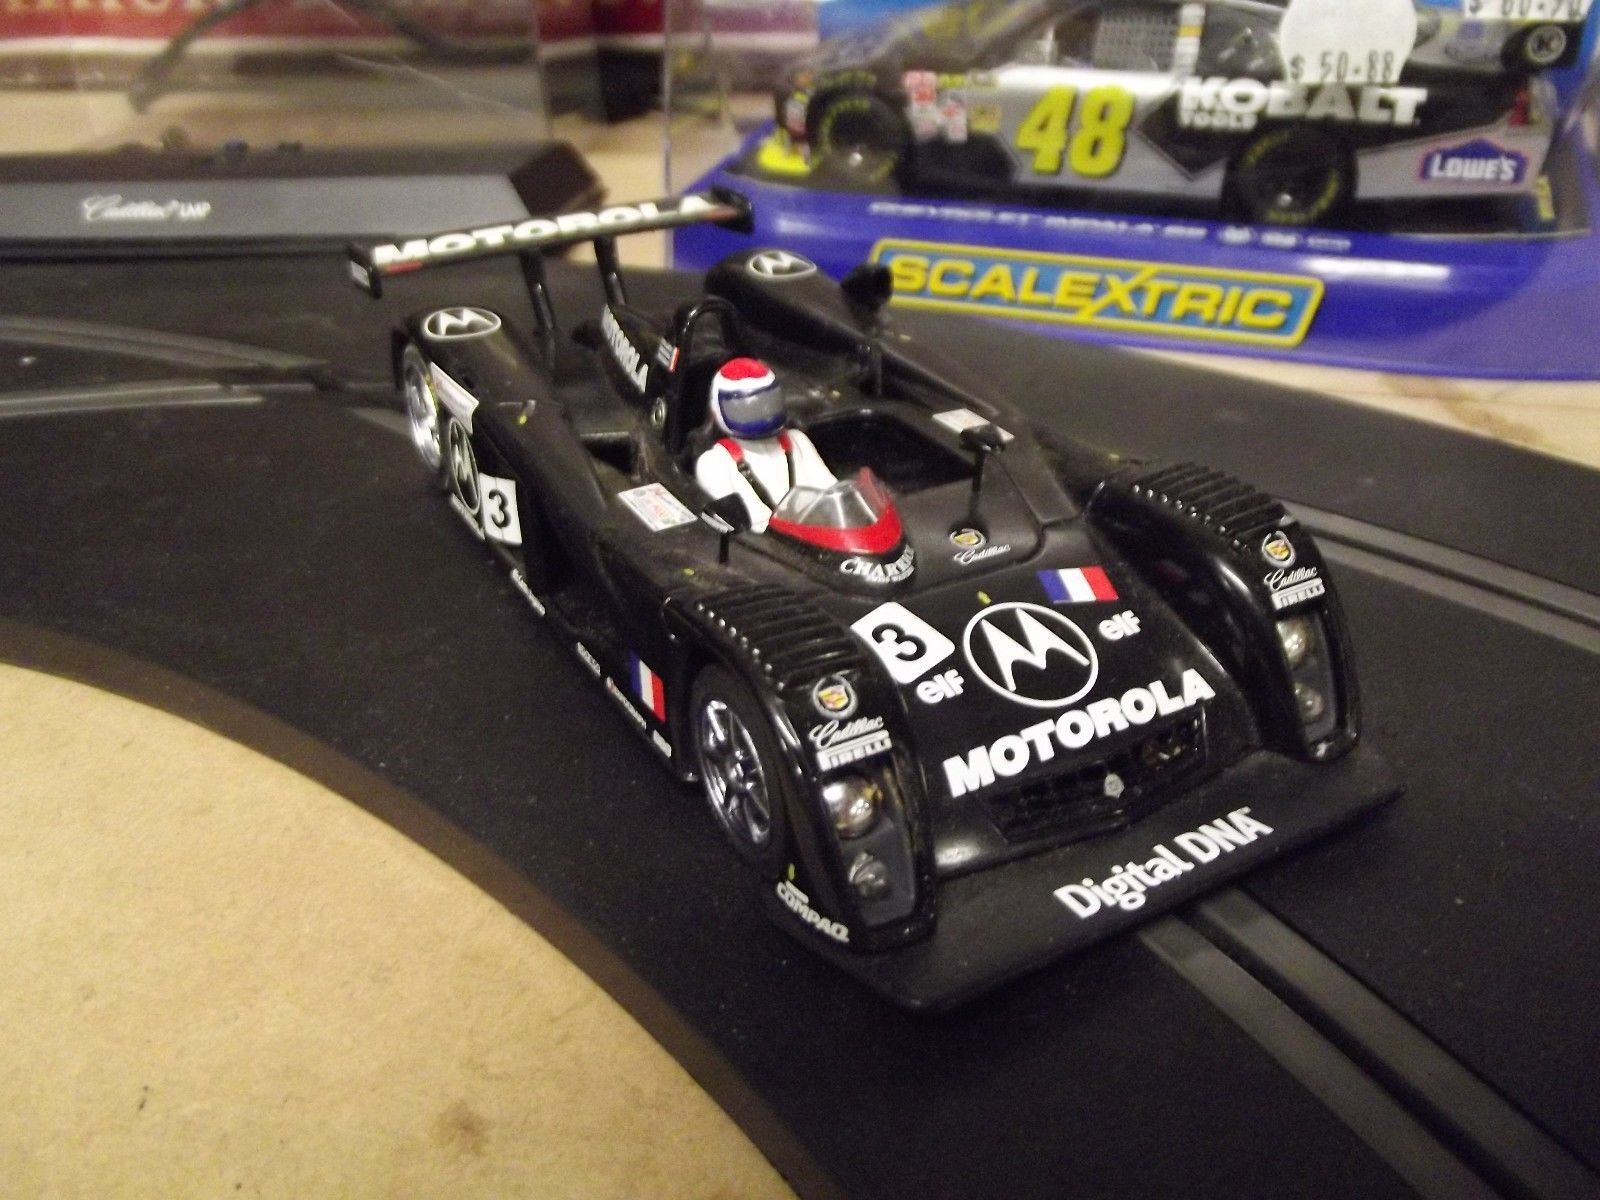 Scalextric Cadillac LMP Northstar #3 C2259 Boxed https://t.co/qHIx7nUv45 https://t.co/ZDckZw2Oki